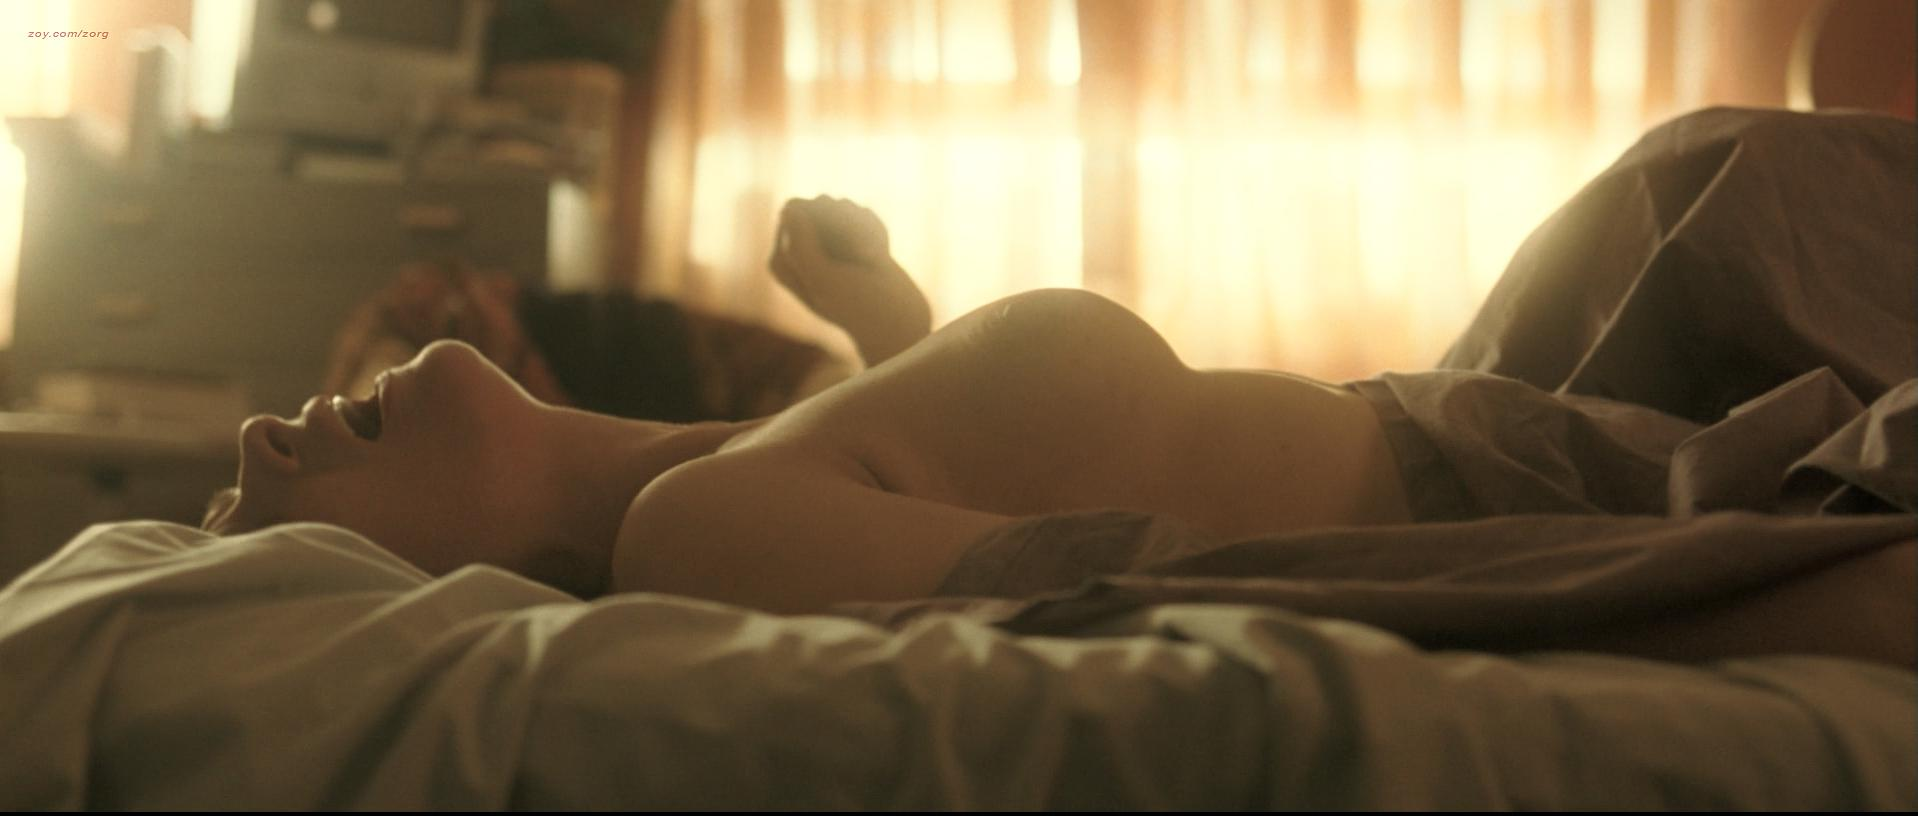 Juliette Binoche nude, Vera Farmiga nude, Robin Wright sexy - Breaking and Entering (2006)